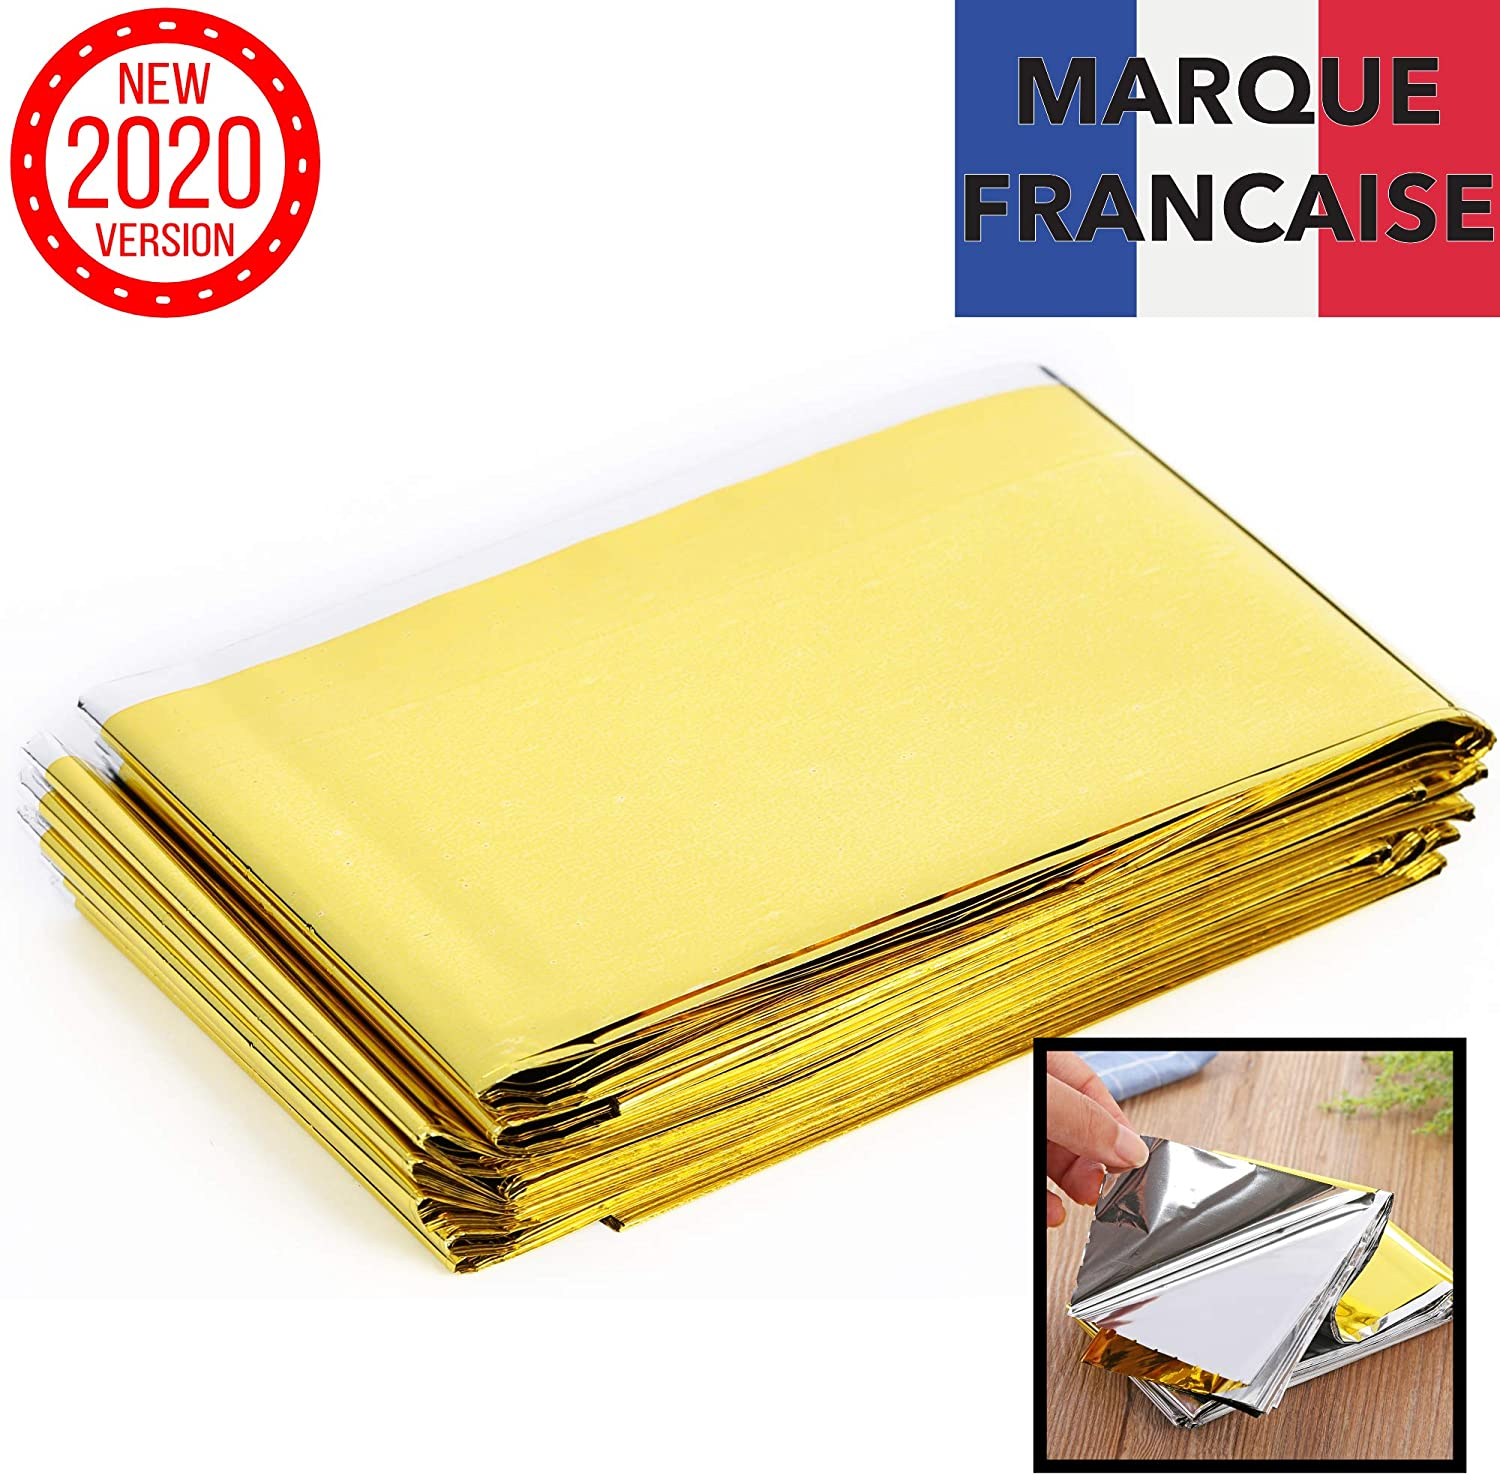 Takit Emergency Blanket Waterproof Gold /& Grey First Aid Hiking Mylar Survival Foil Blanket Warming for Camping Extra Large Reusable 210x160CM